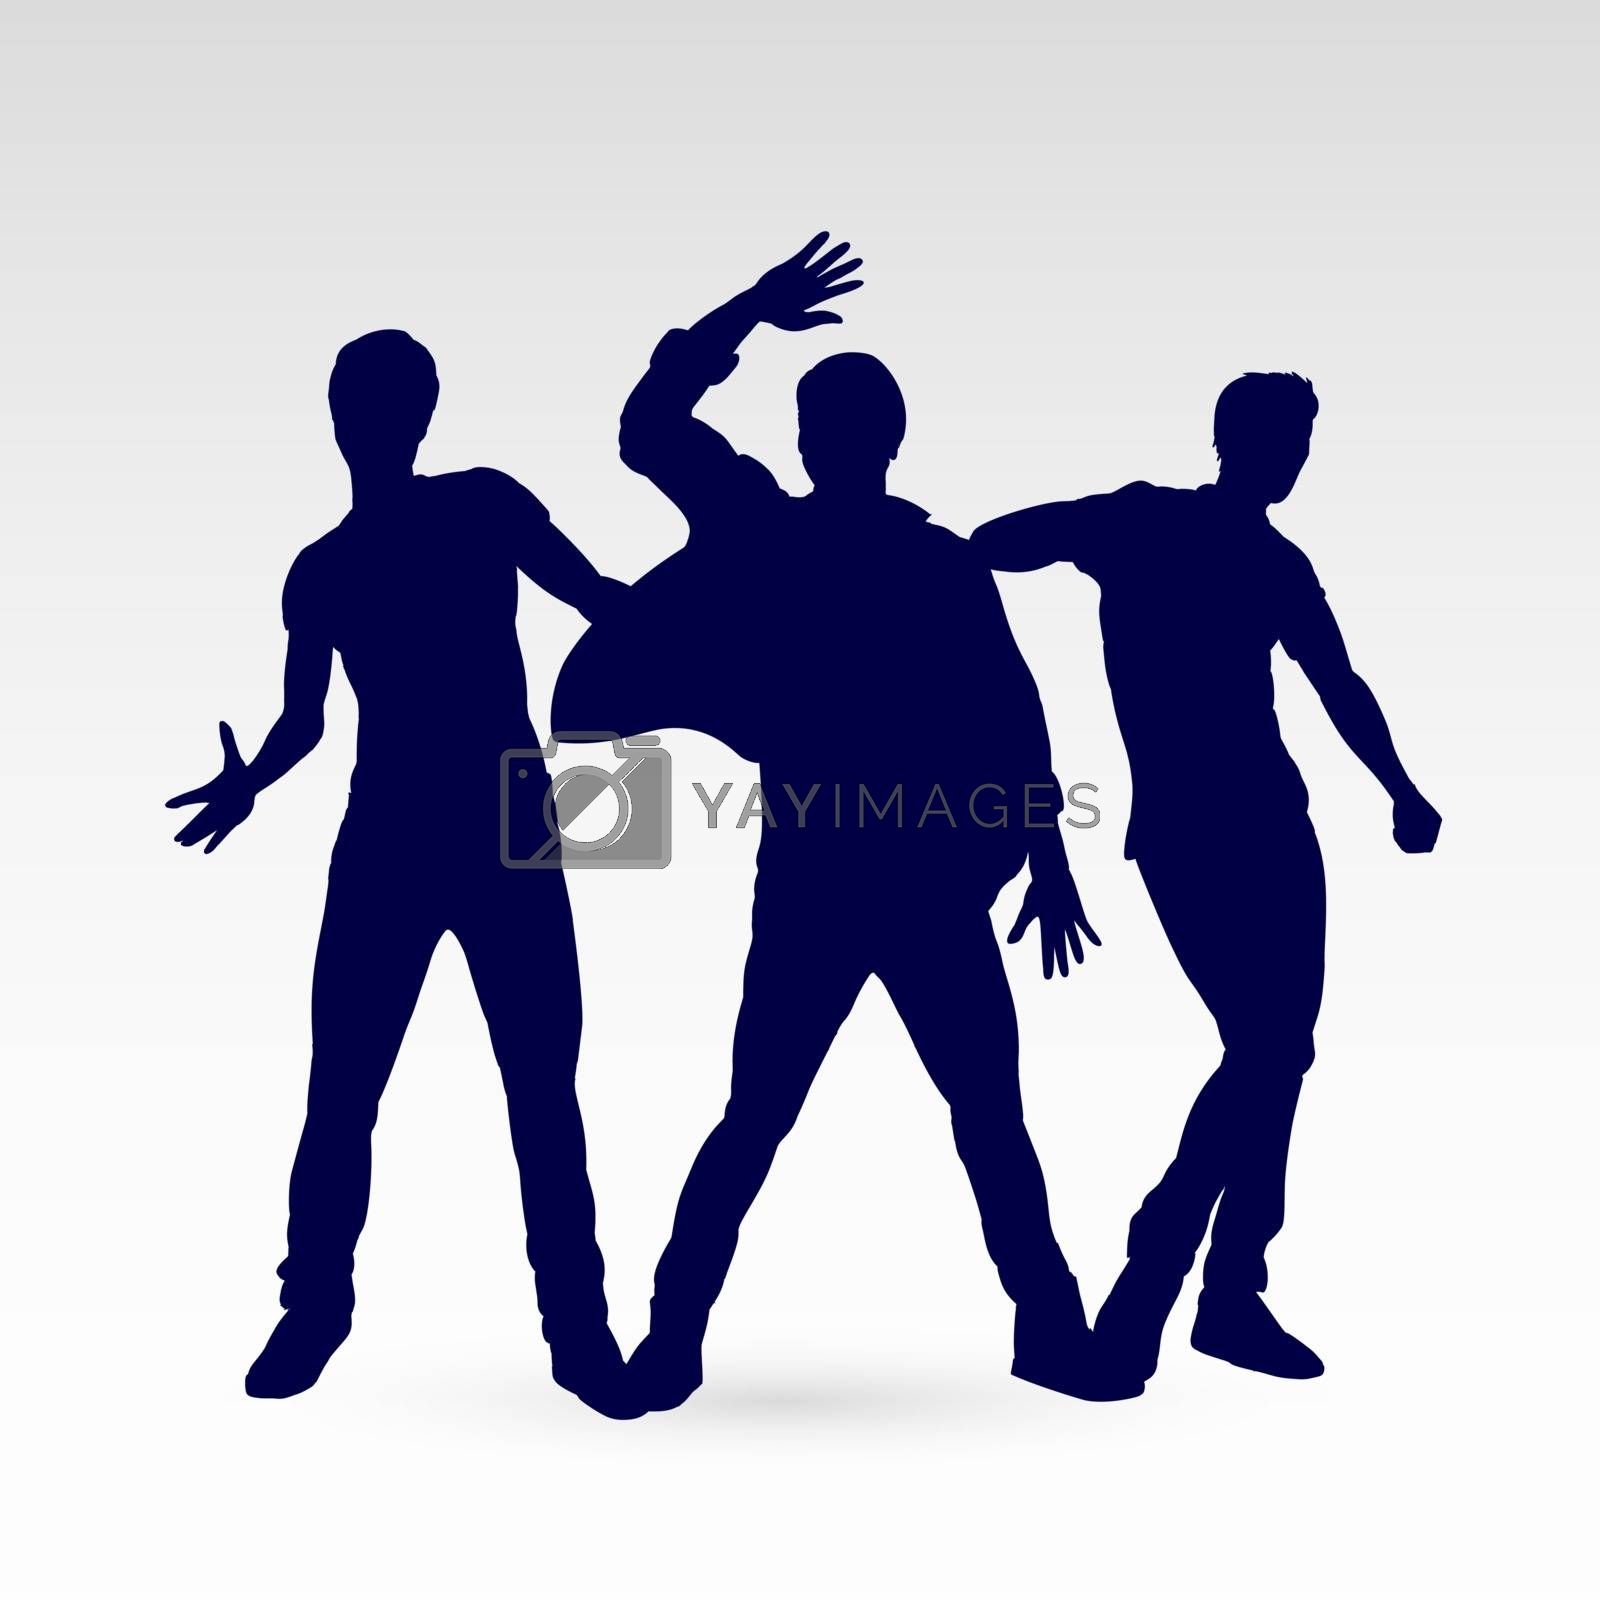 Set of Silhouette Dancing Males in Different Poses. Illustration for Design